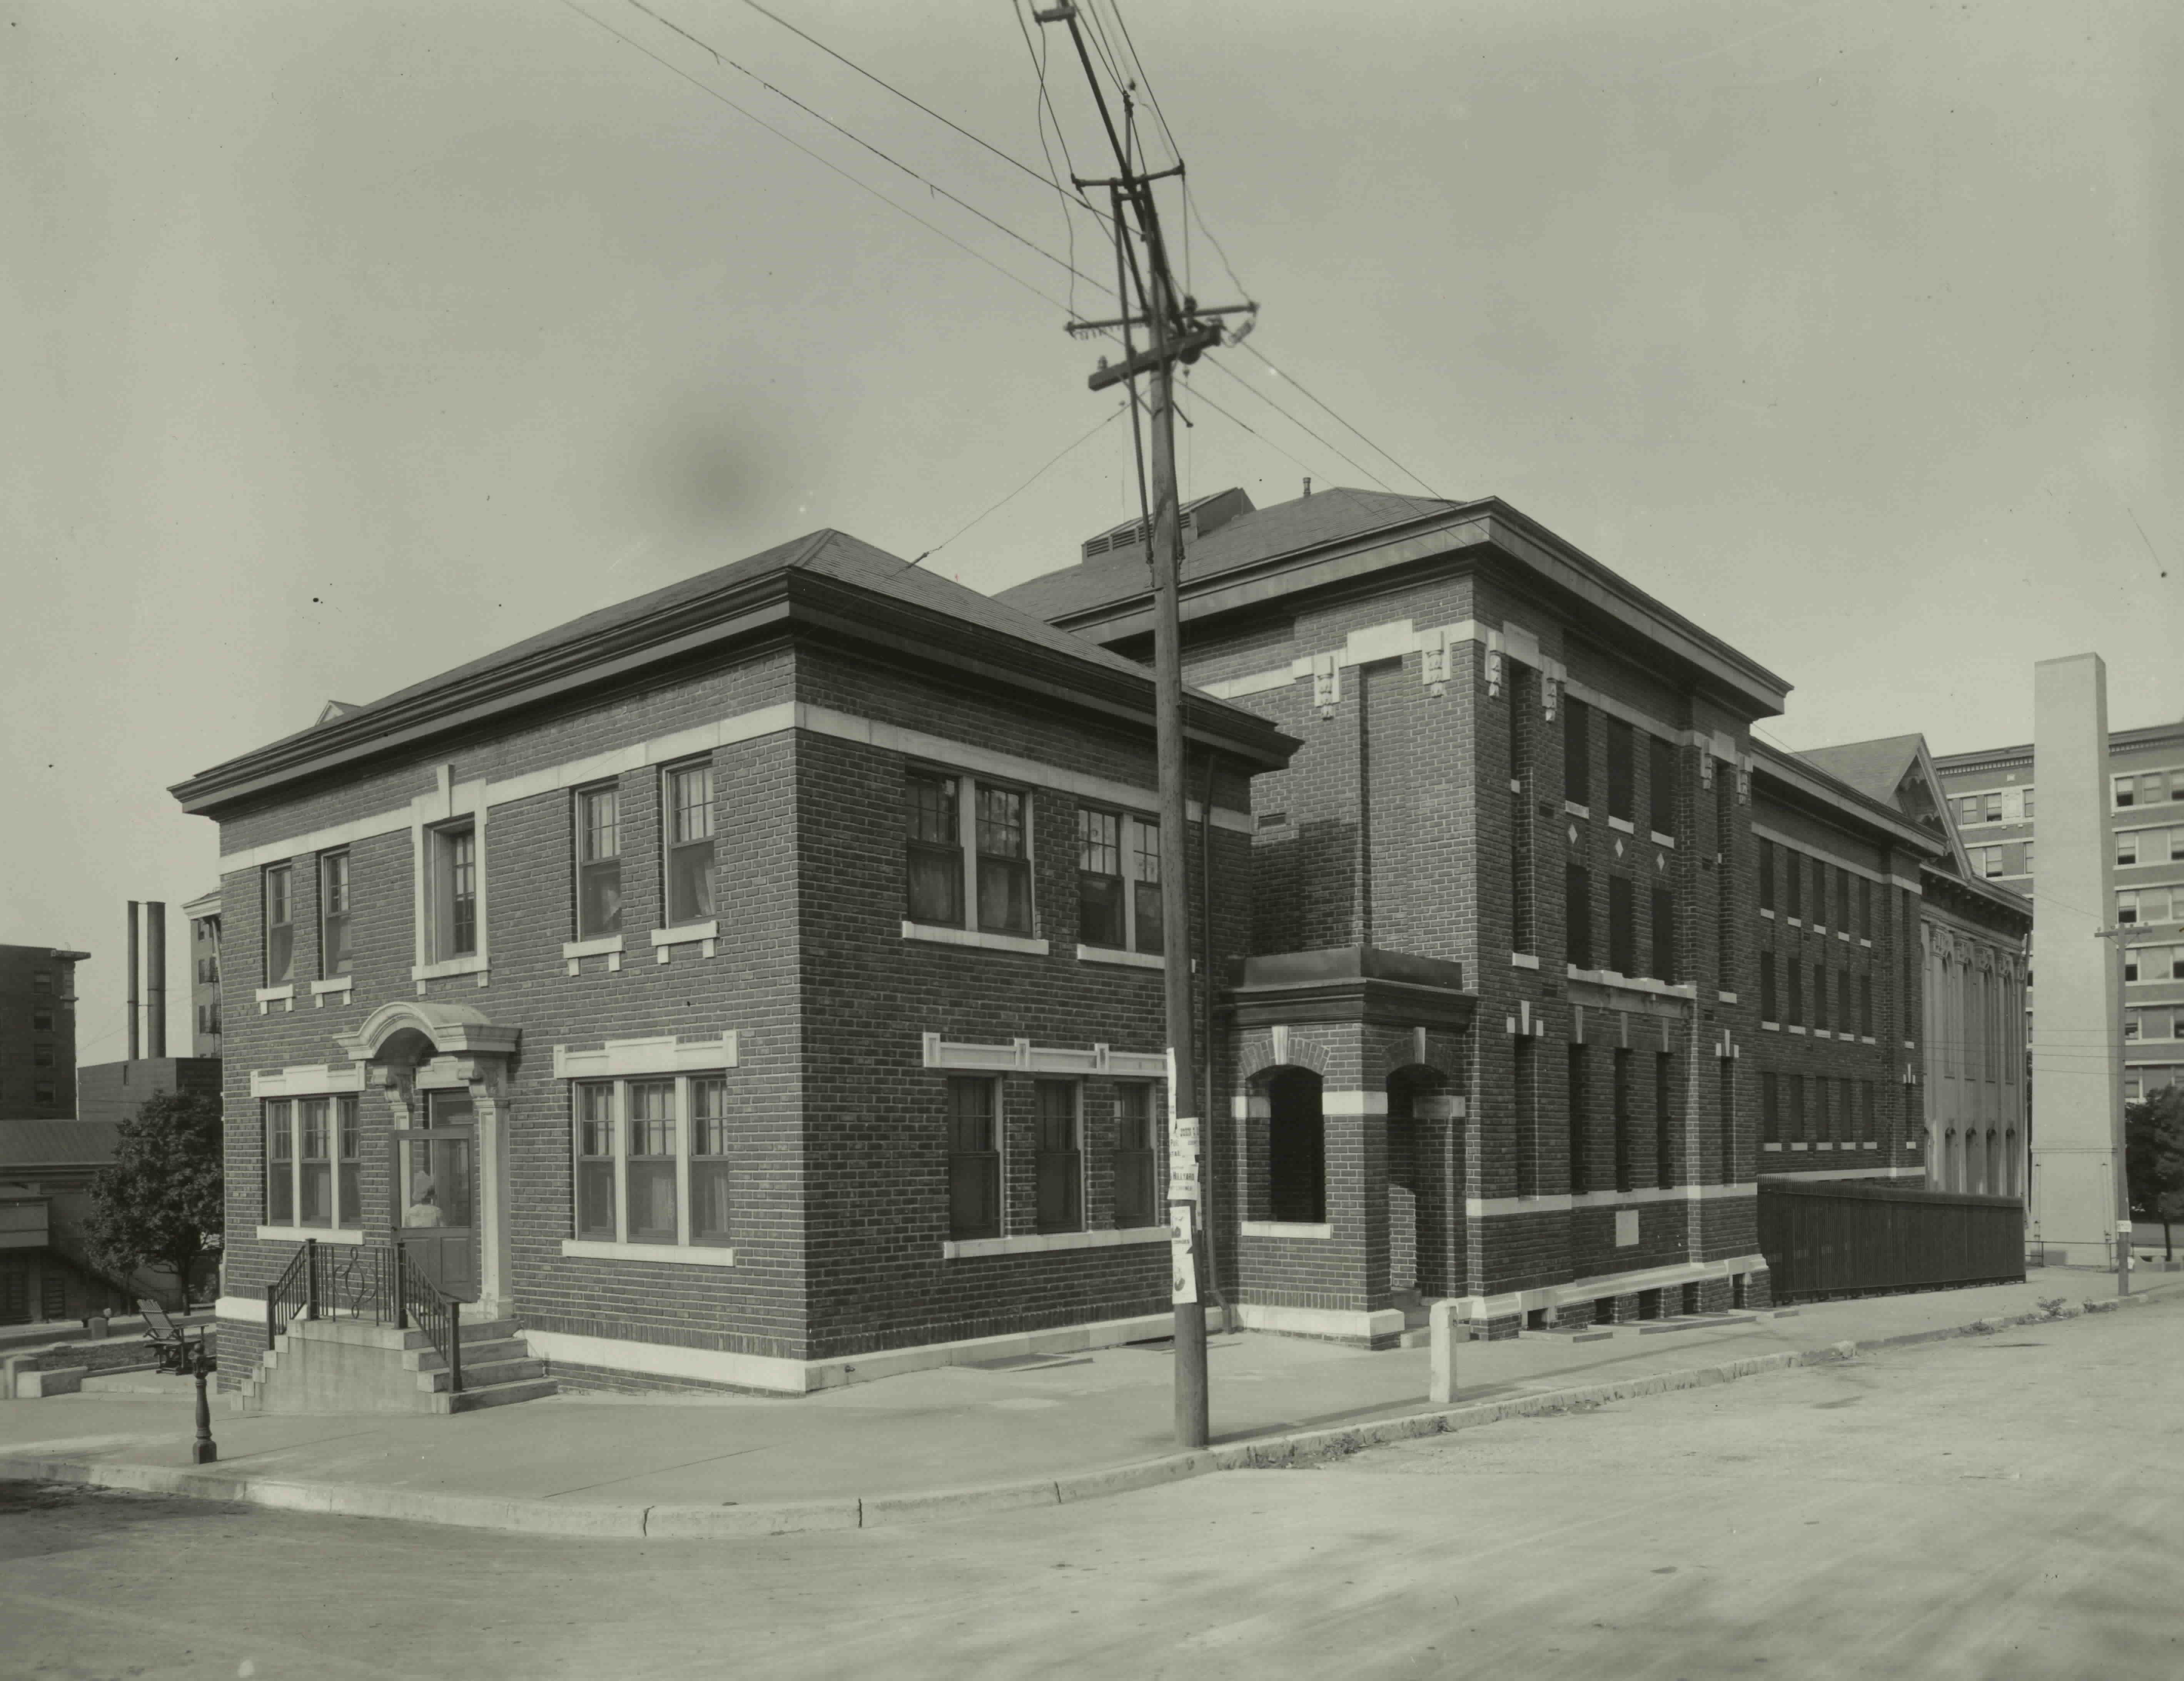 Buchanan County Jail, 322 N. Fifth Street,  5th & Faraon, 1909.  Designed by Eckel & Boschen.  Constructed in 1909. Front and north side looking west down Faraon Street. Image provided by the St. Joseph Museums, Inc.